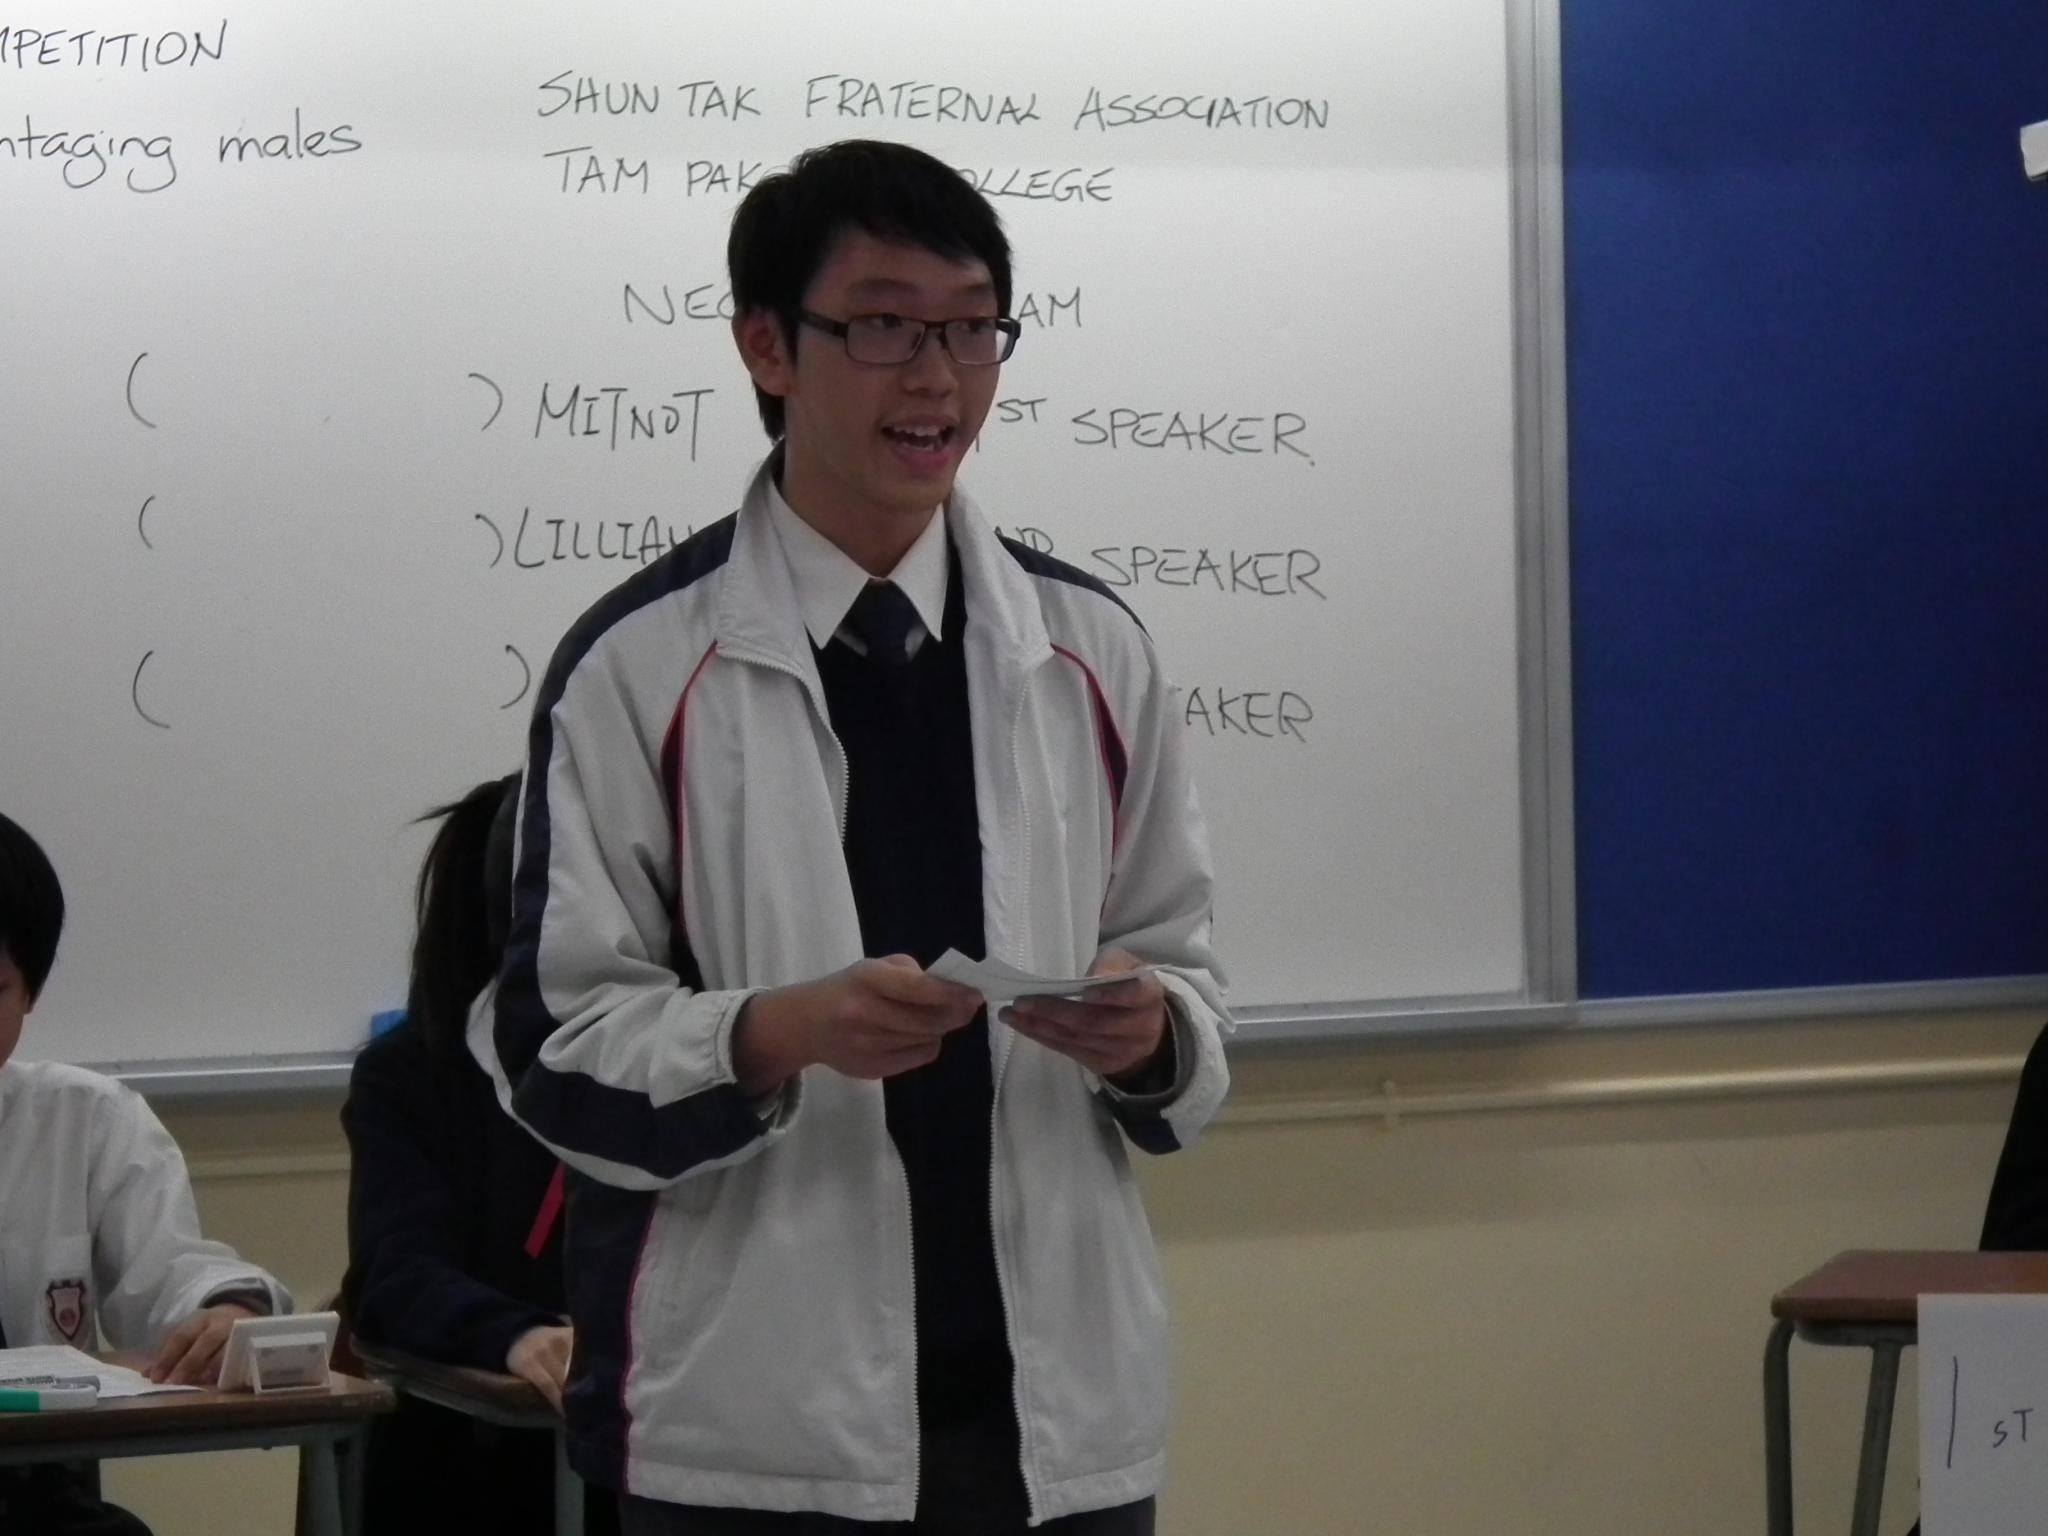 Our first speaker, Donald Yip, delivers his speech confidently.